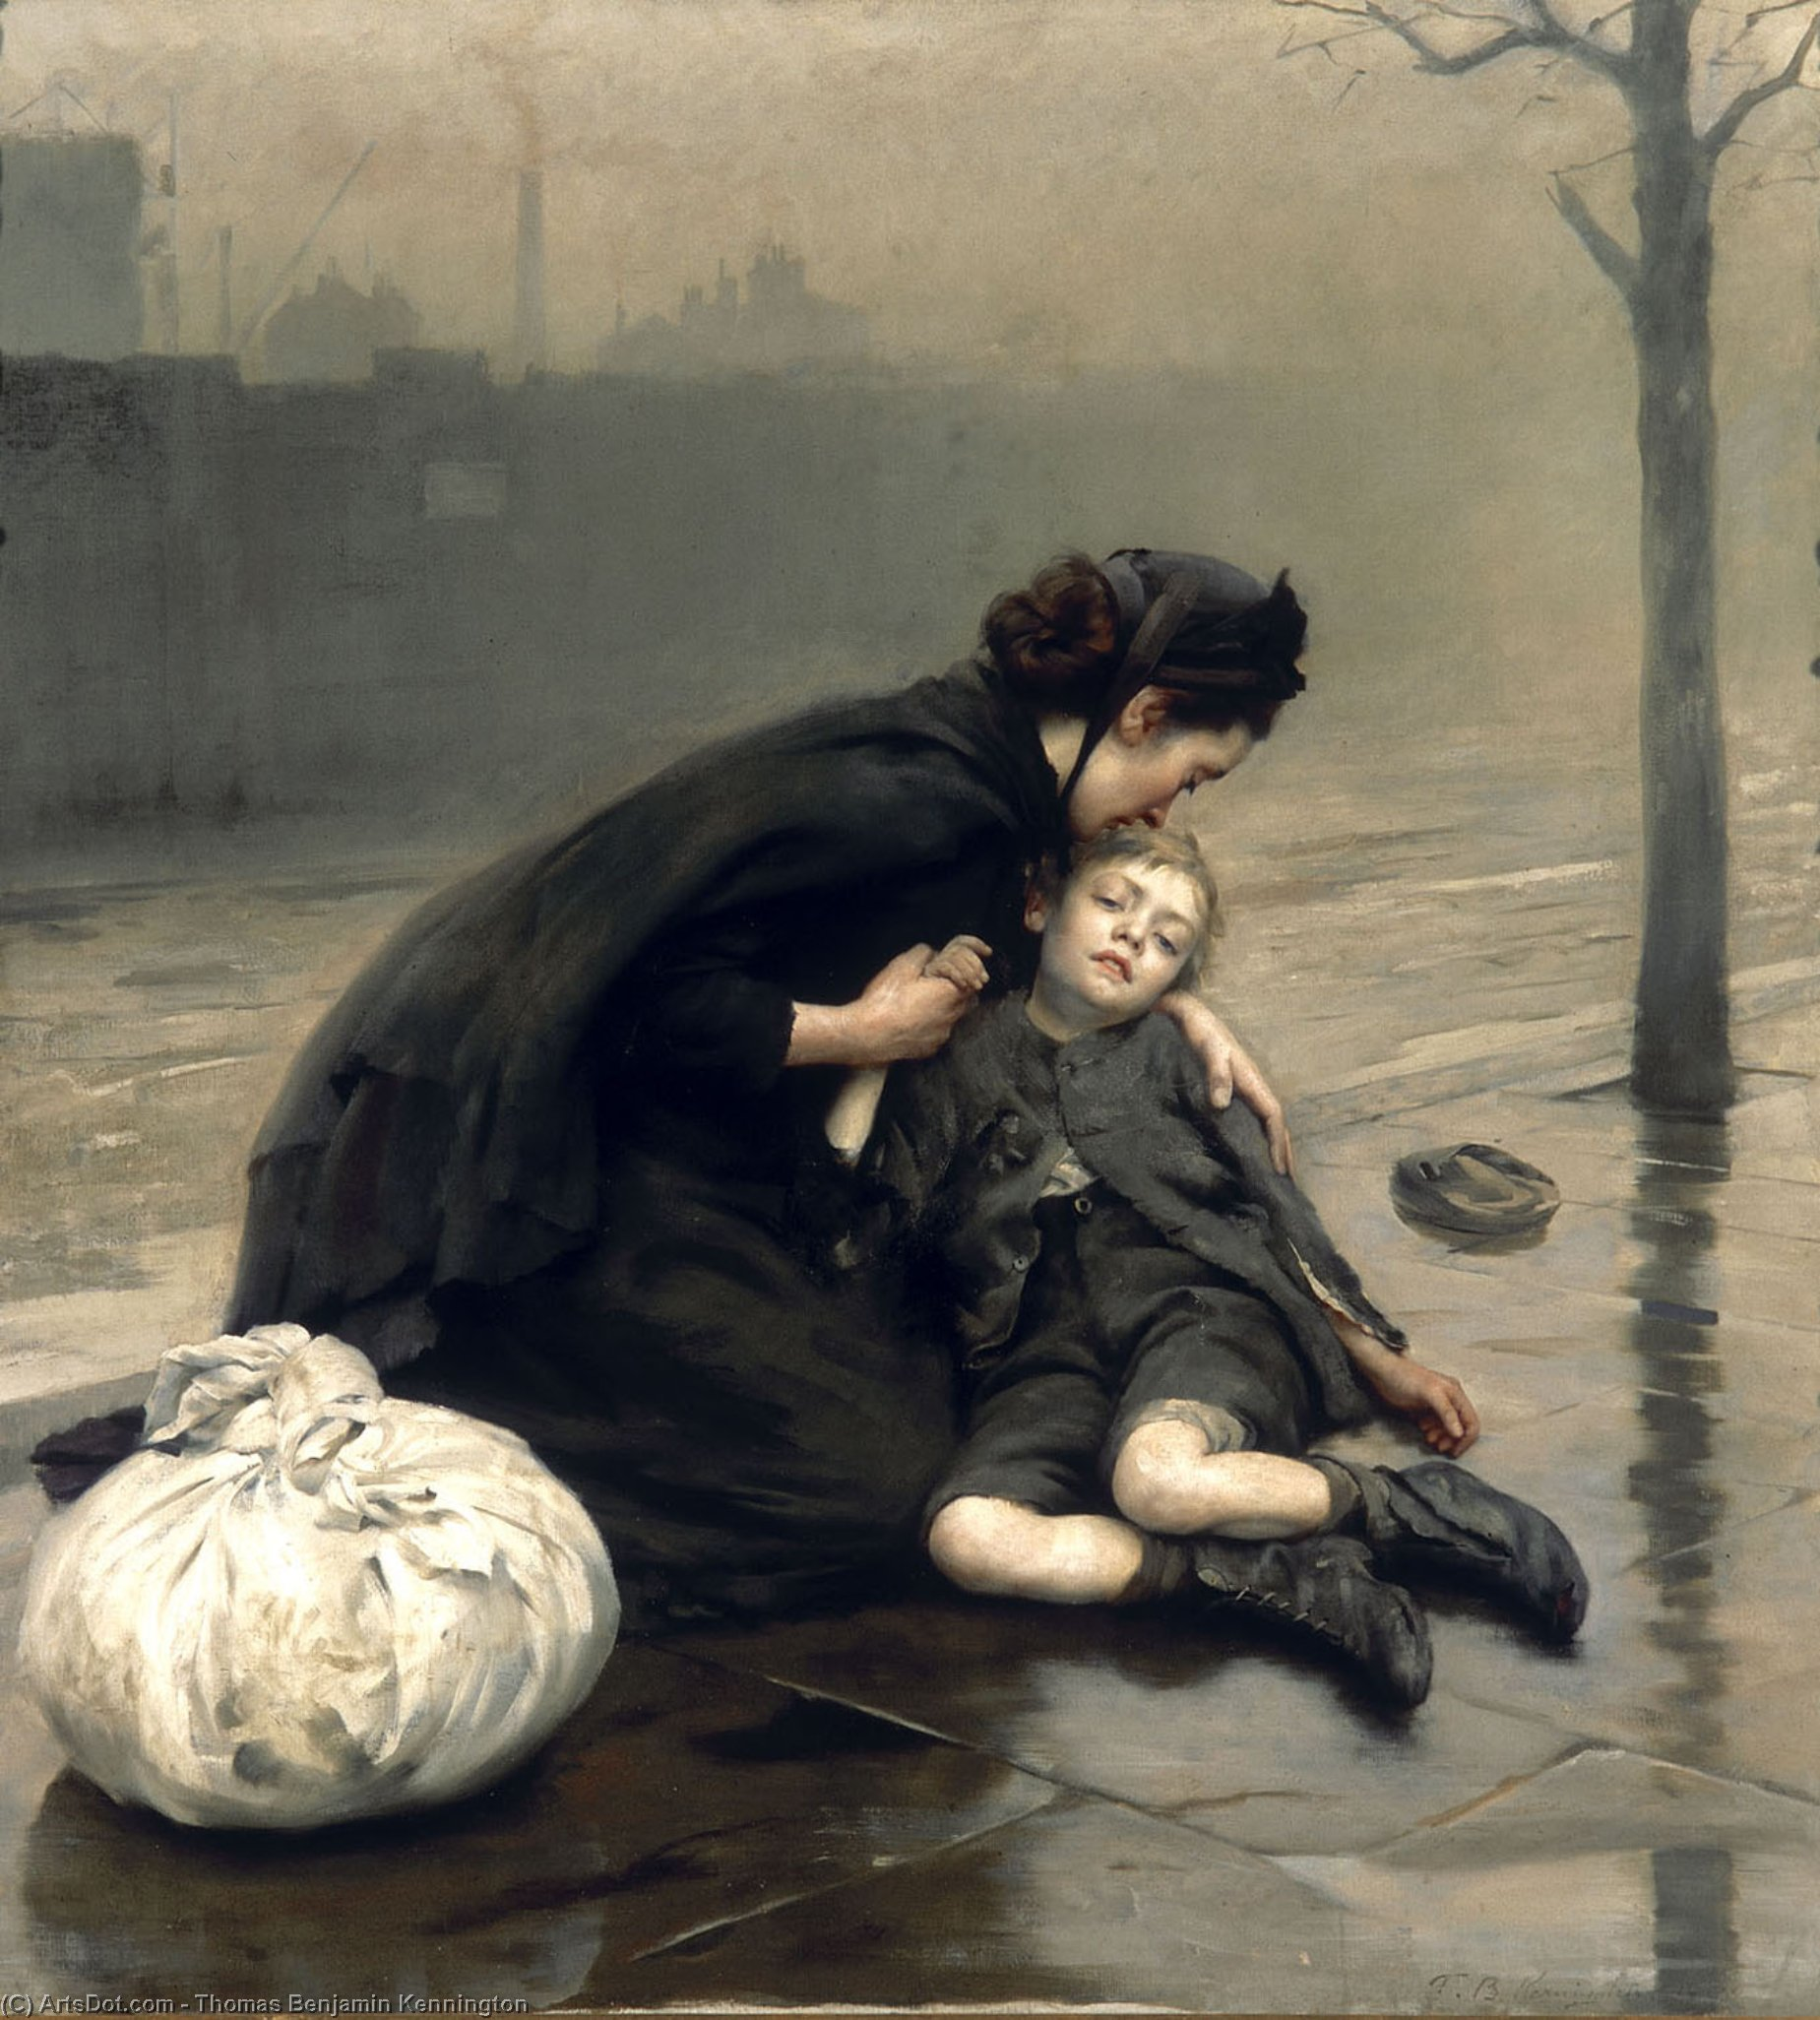 无家可归, 油画 通过 Thomas Benjamin Kennington (1856-1916, United Kingdom)